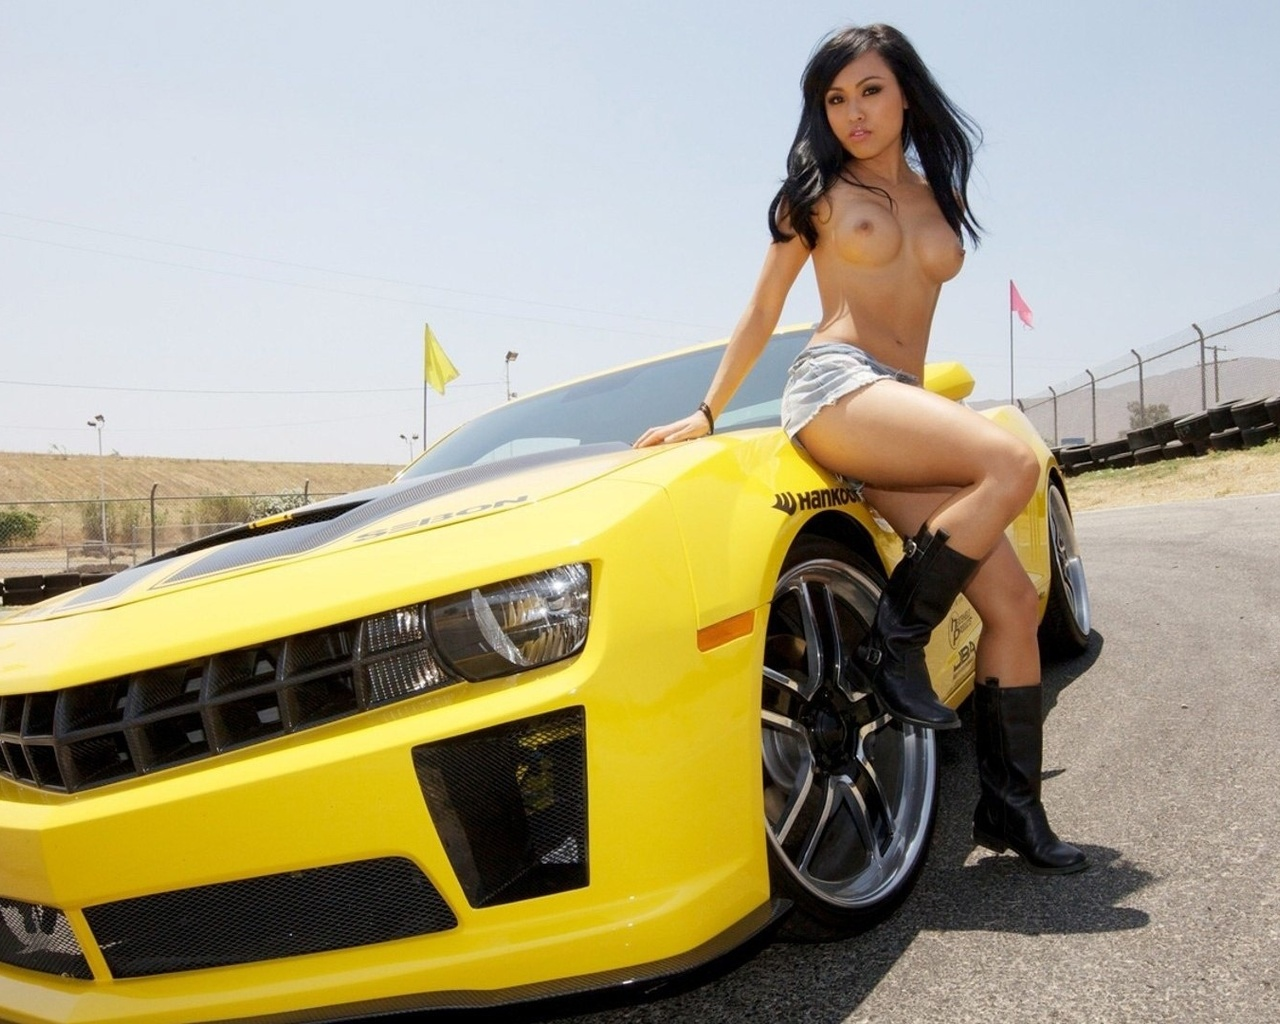 nude-car-import-girls